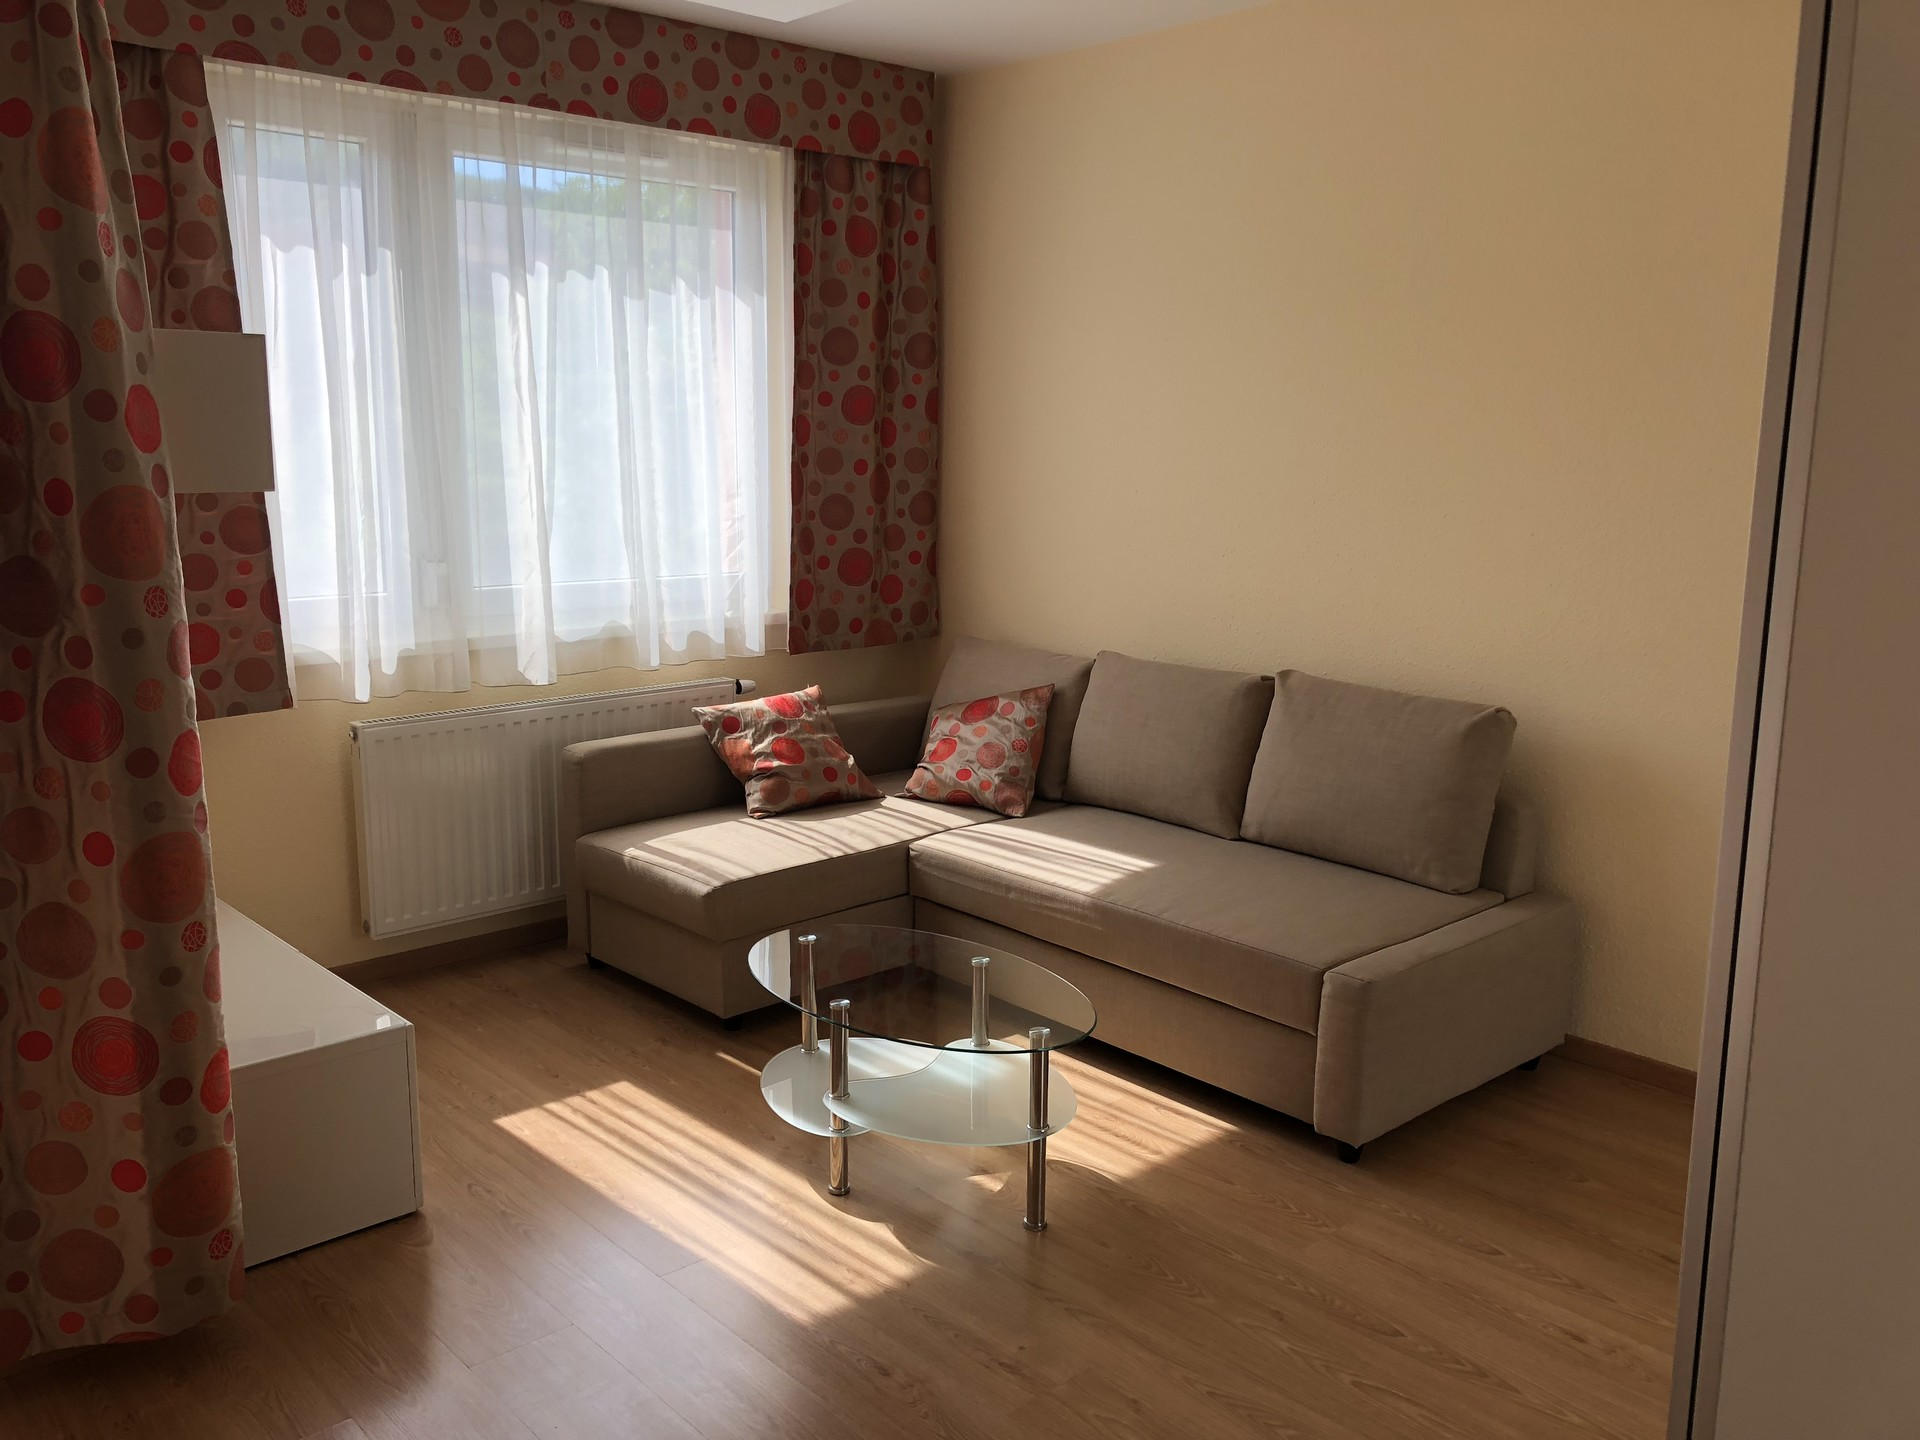 exclusive-fully-furnished-sunny-room-apartment-budapest-55cbdef56802e8a7c2b2fb938d4783bd